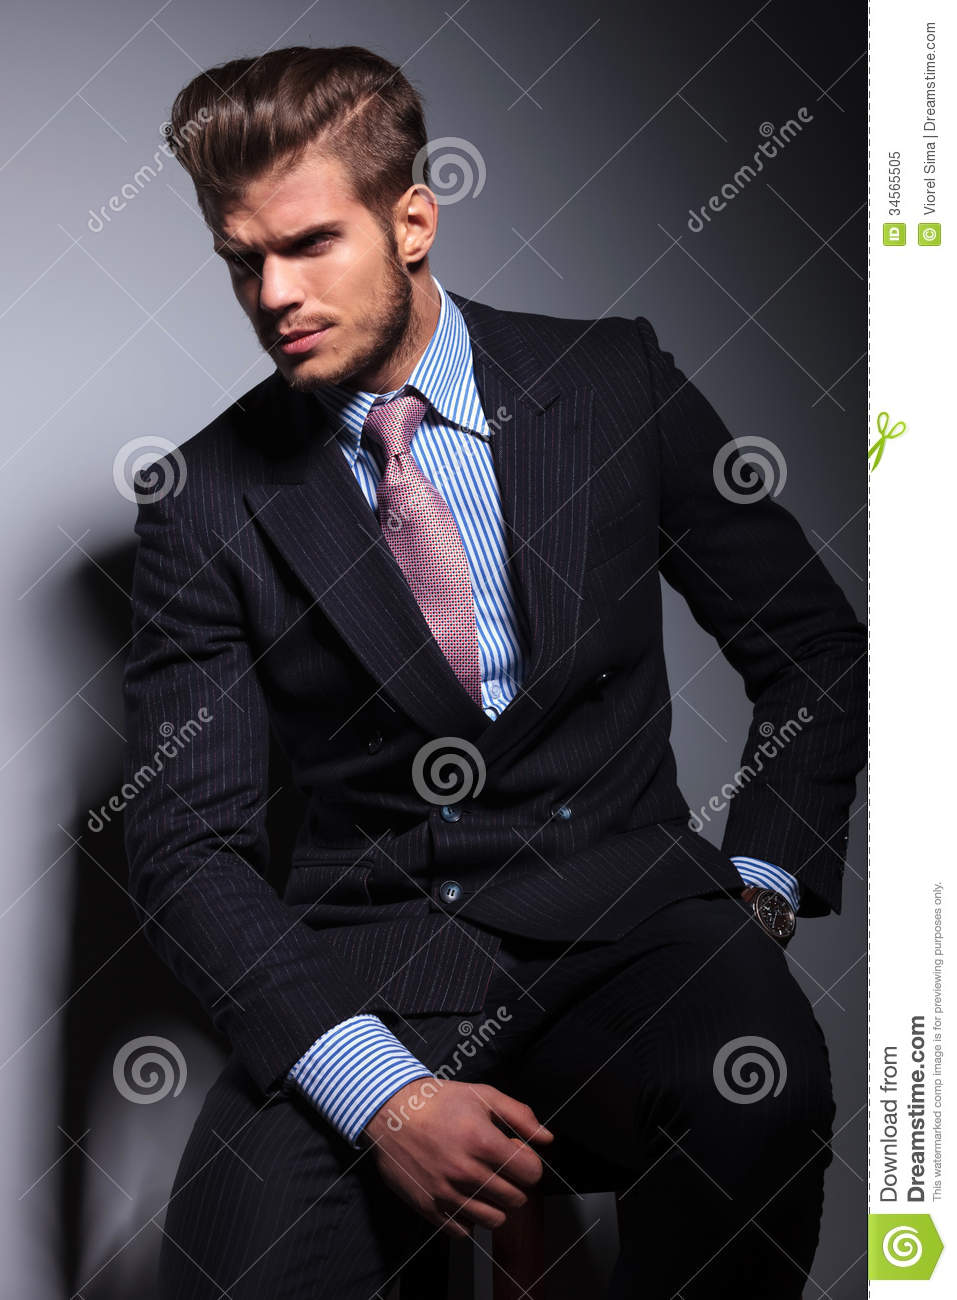 Angry Young Business Man In Classic Suit And Tie Sitting